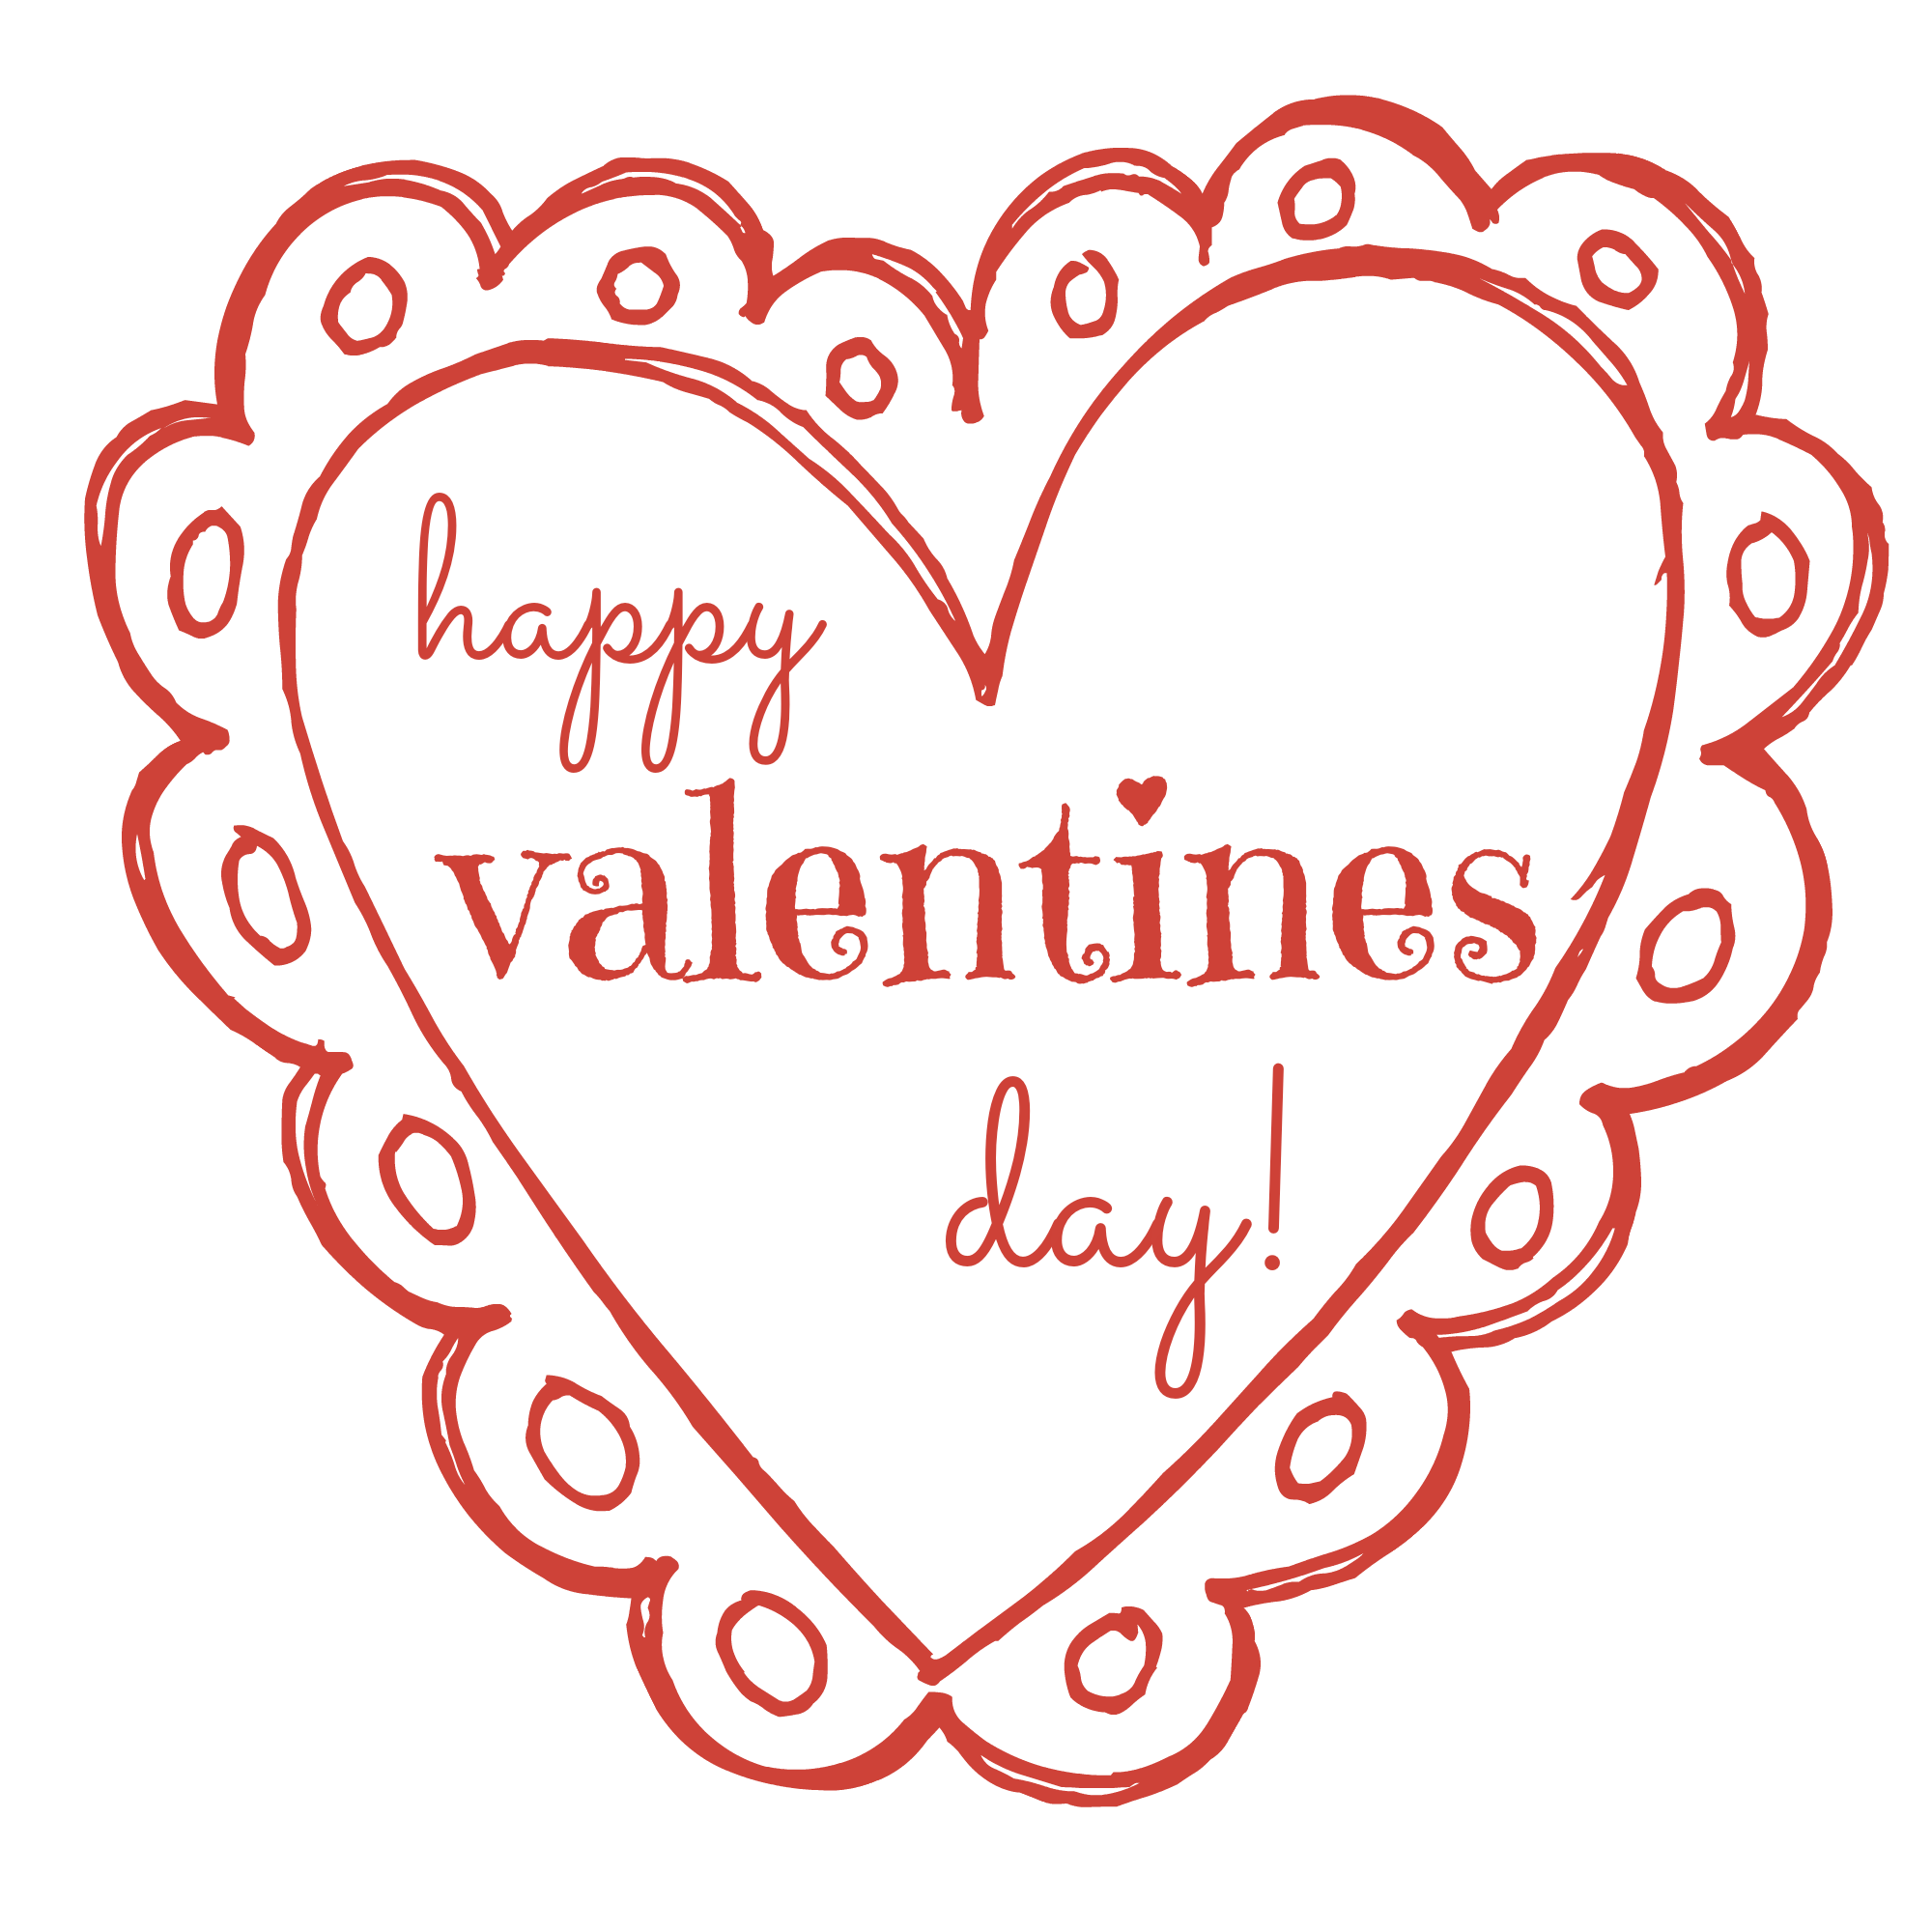 Happy Valentines Day! – Come Home For Comfort